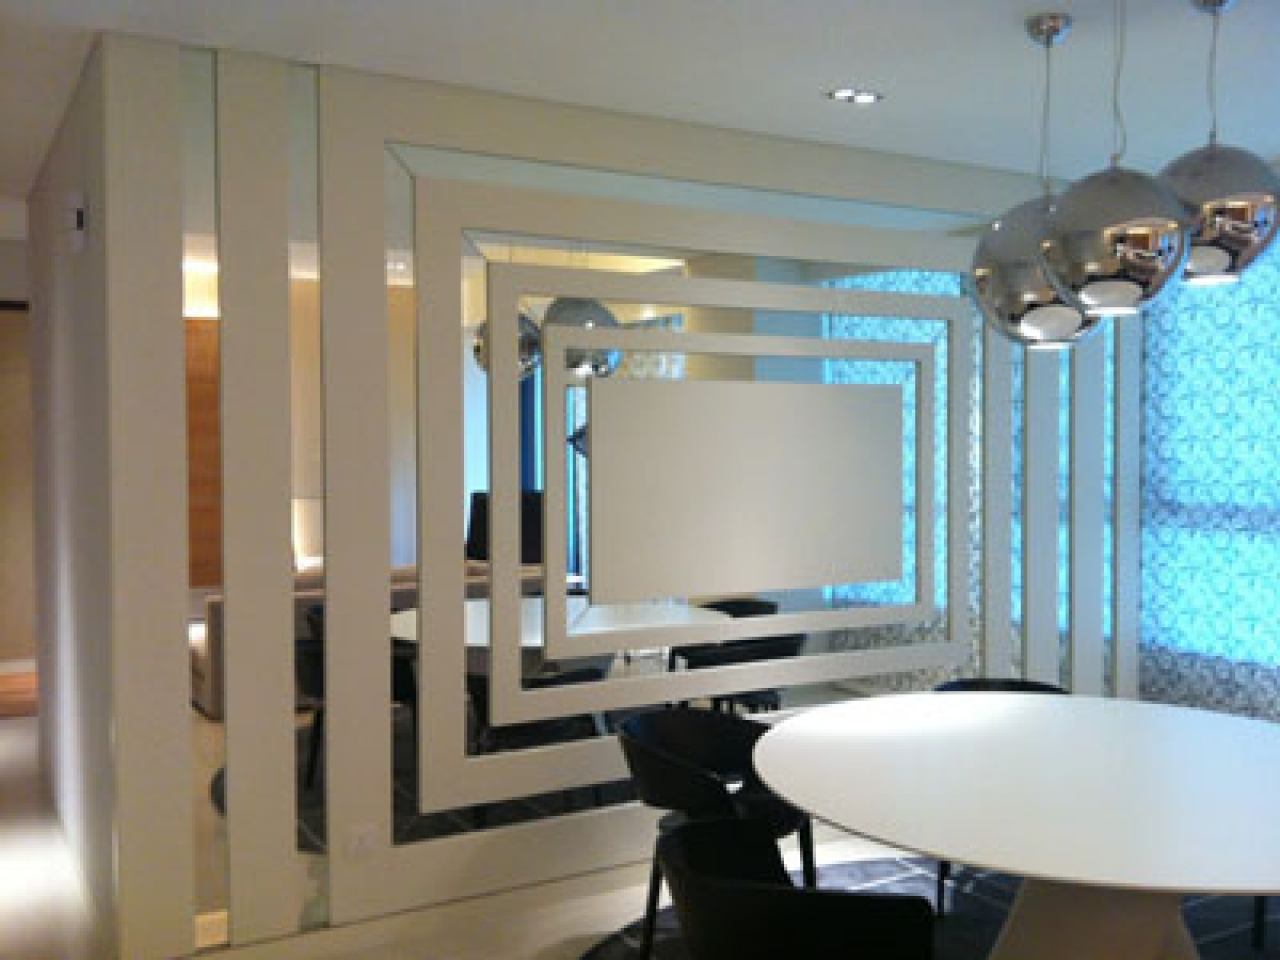 Home Decor mirror wall full image for wall design with mirrors 14 enchanting ideas with modern rjqogsn